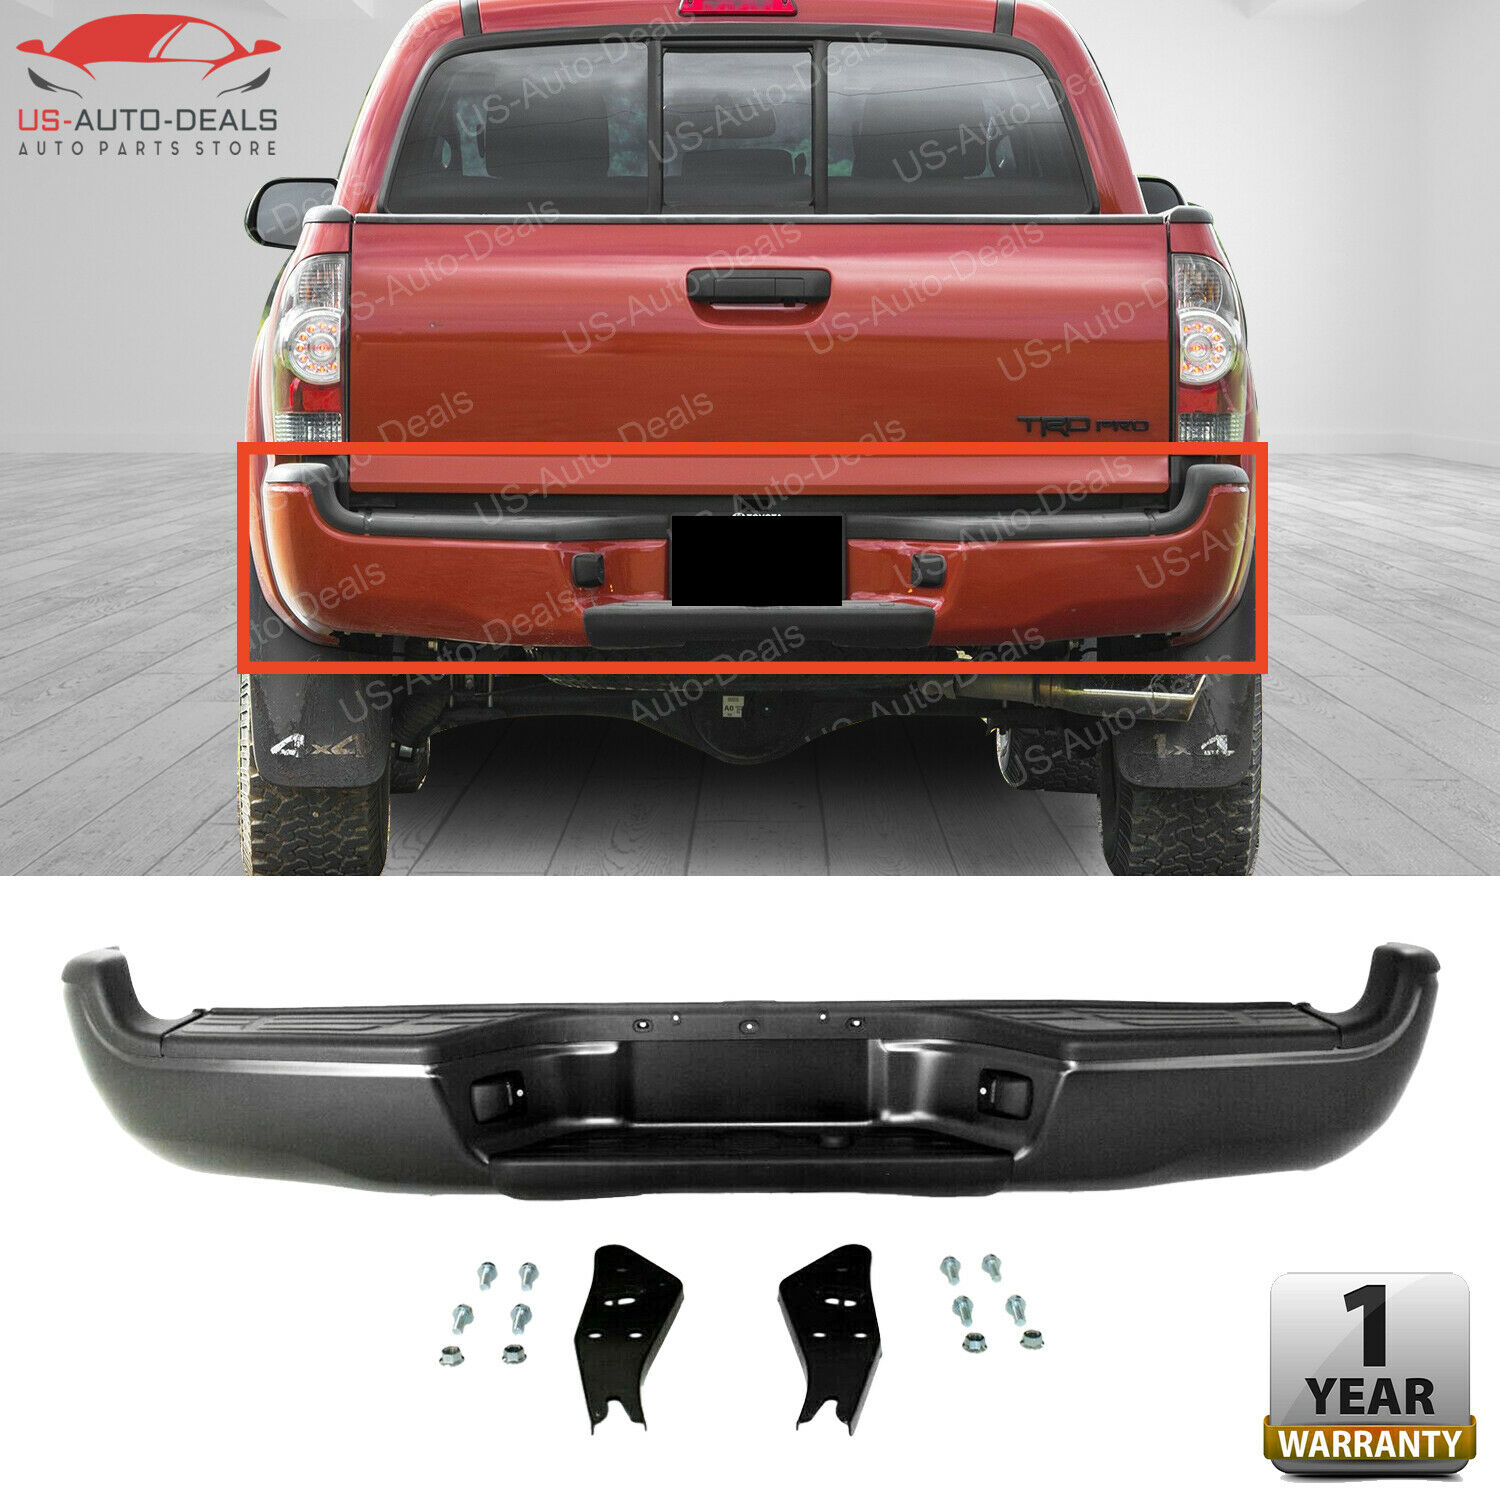 Compatible with Toyota Tacoma 05-15 Rear Bumper Molding Step Pad Extension Left Side Plastic Primed